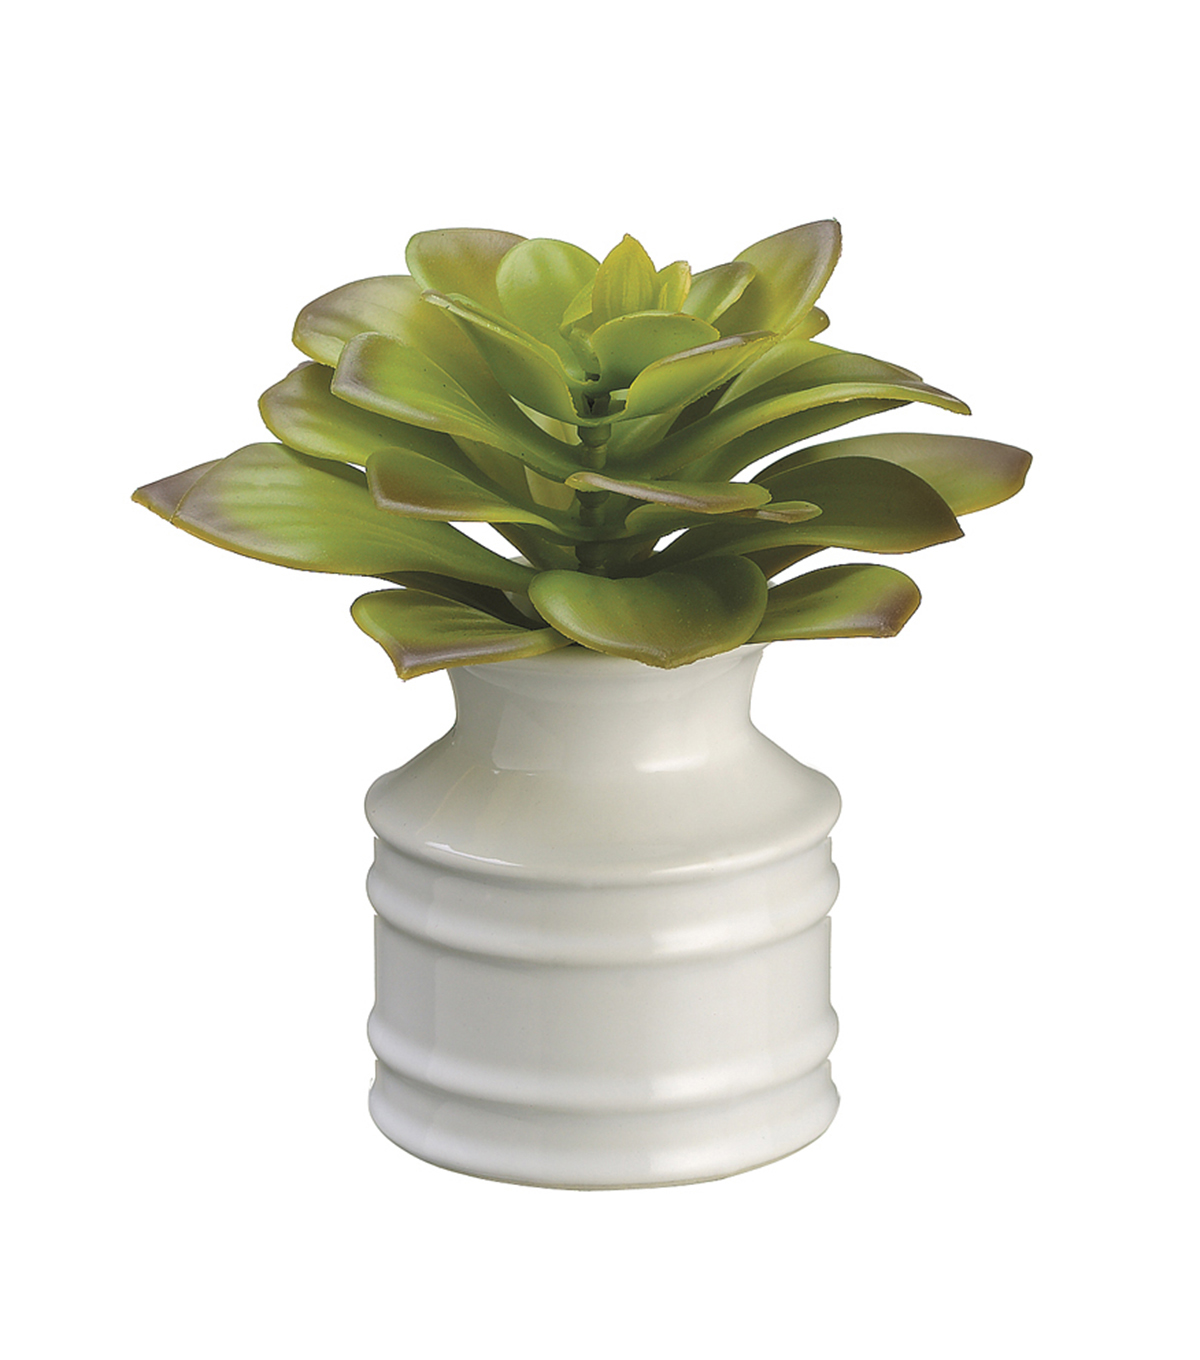 Bloom Room 5\u0027\u0027 Echeveria in Ceramic Vase with Re-Shippable Box-Green